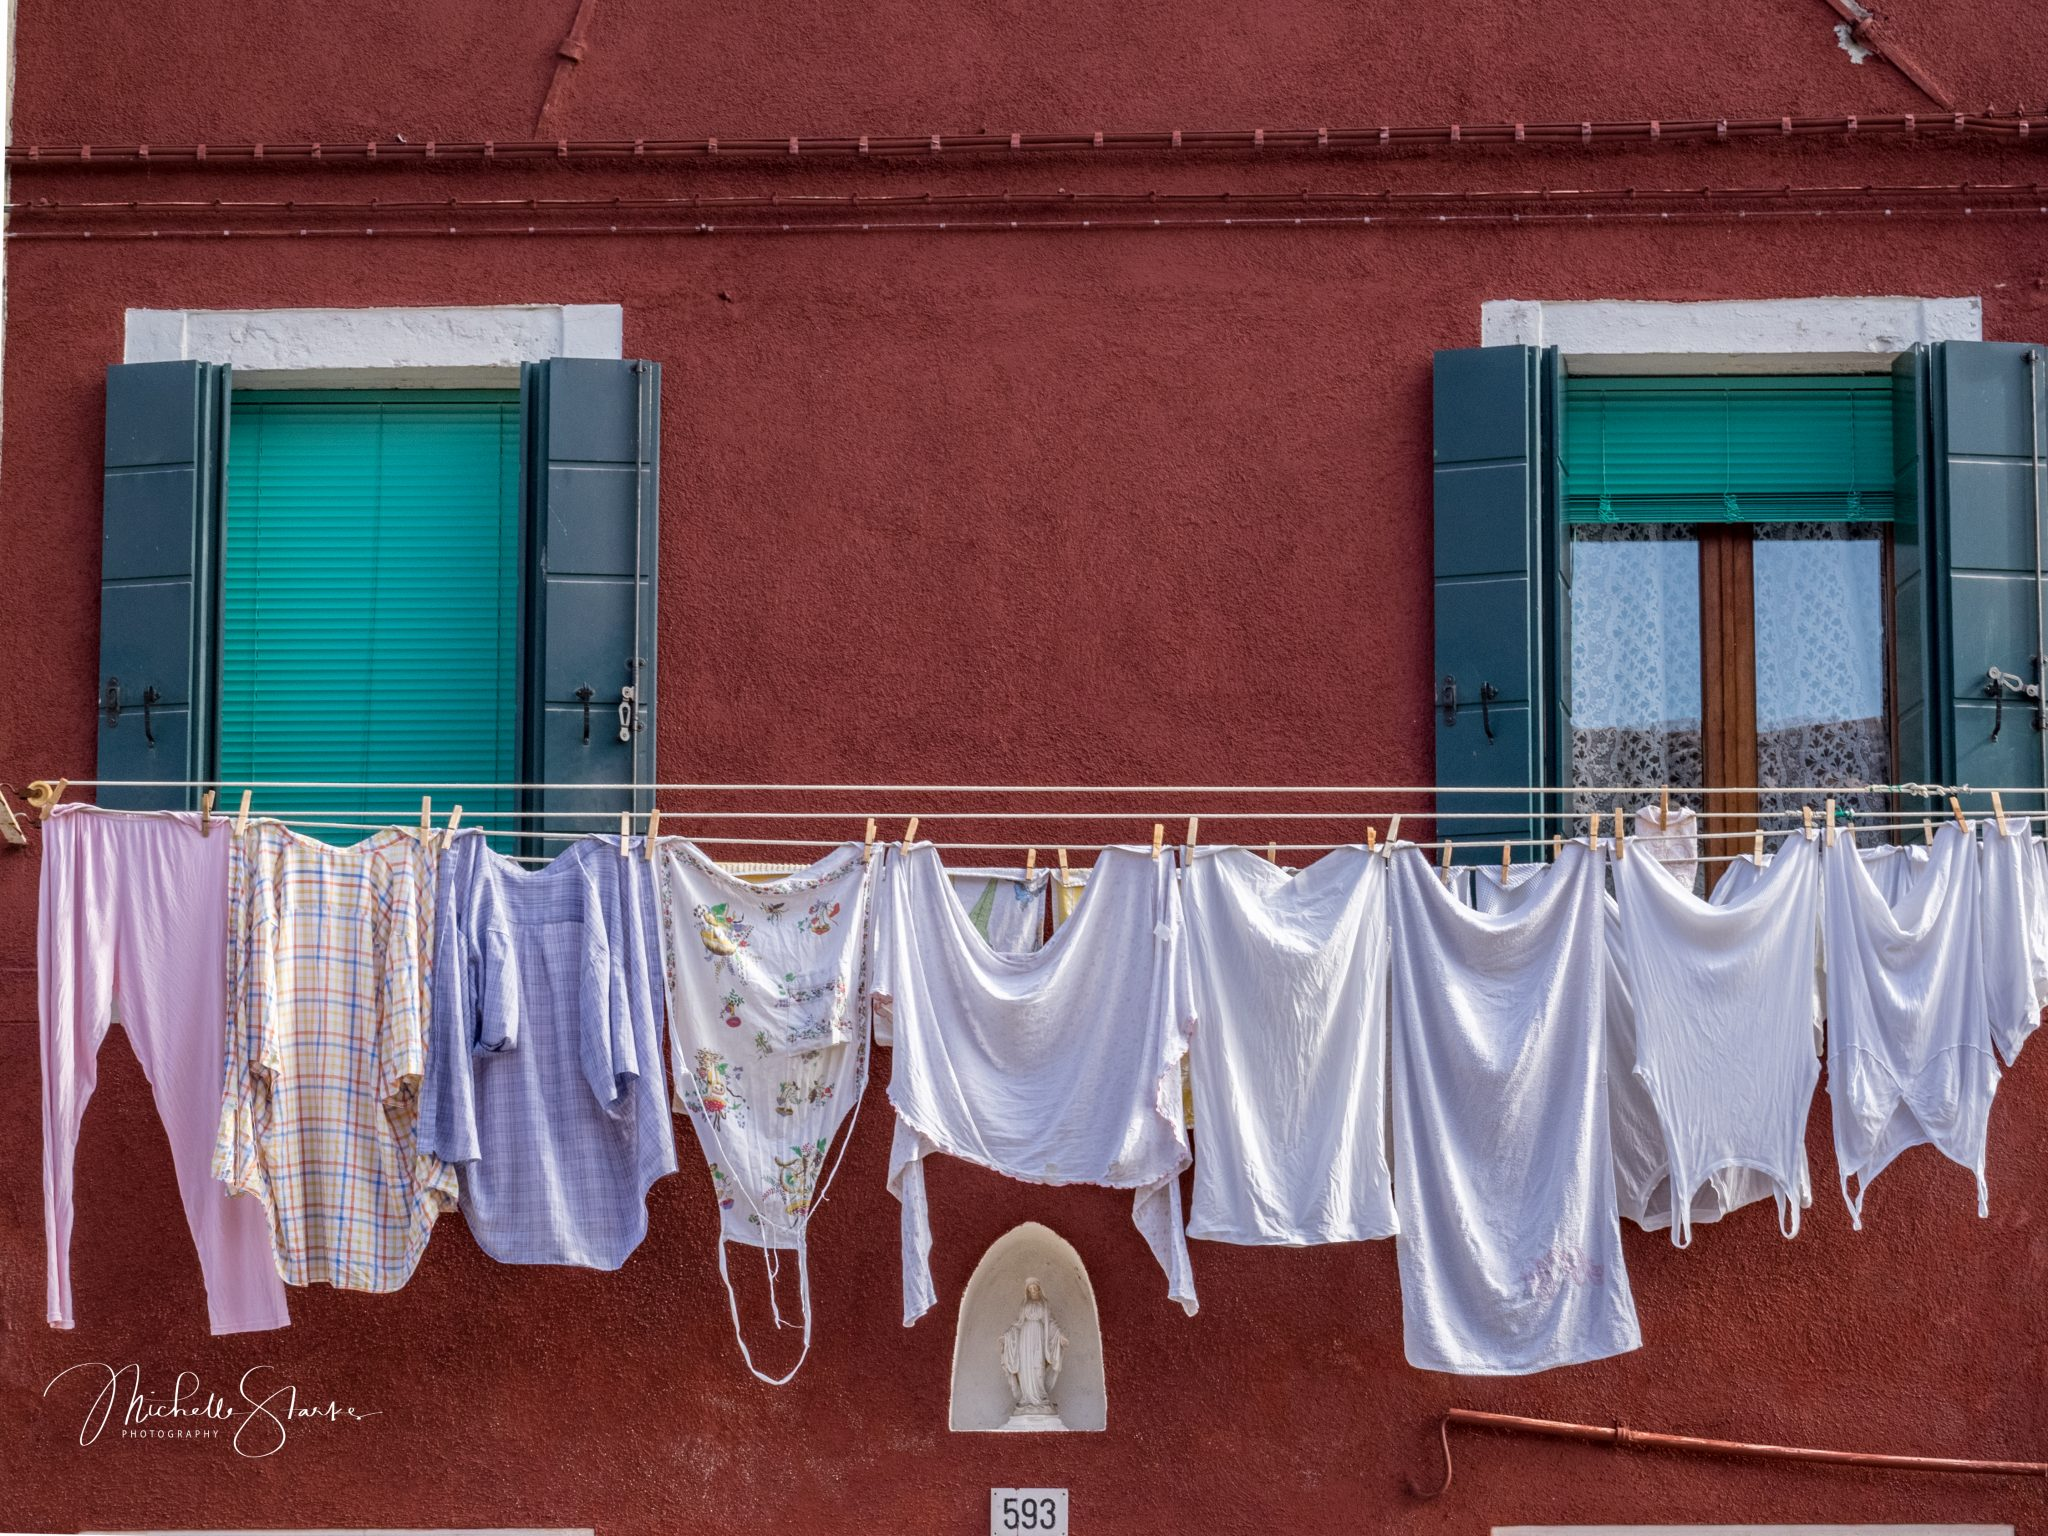 Laundry day, Burano, Italy